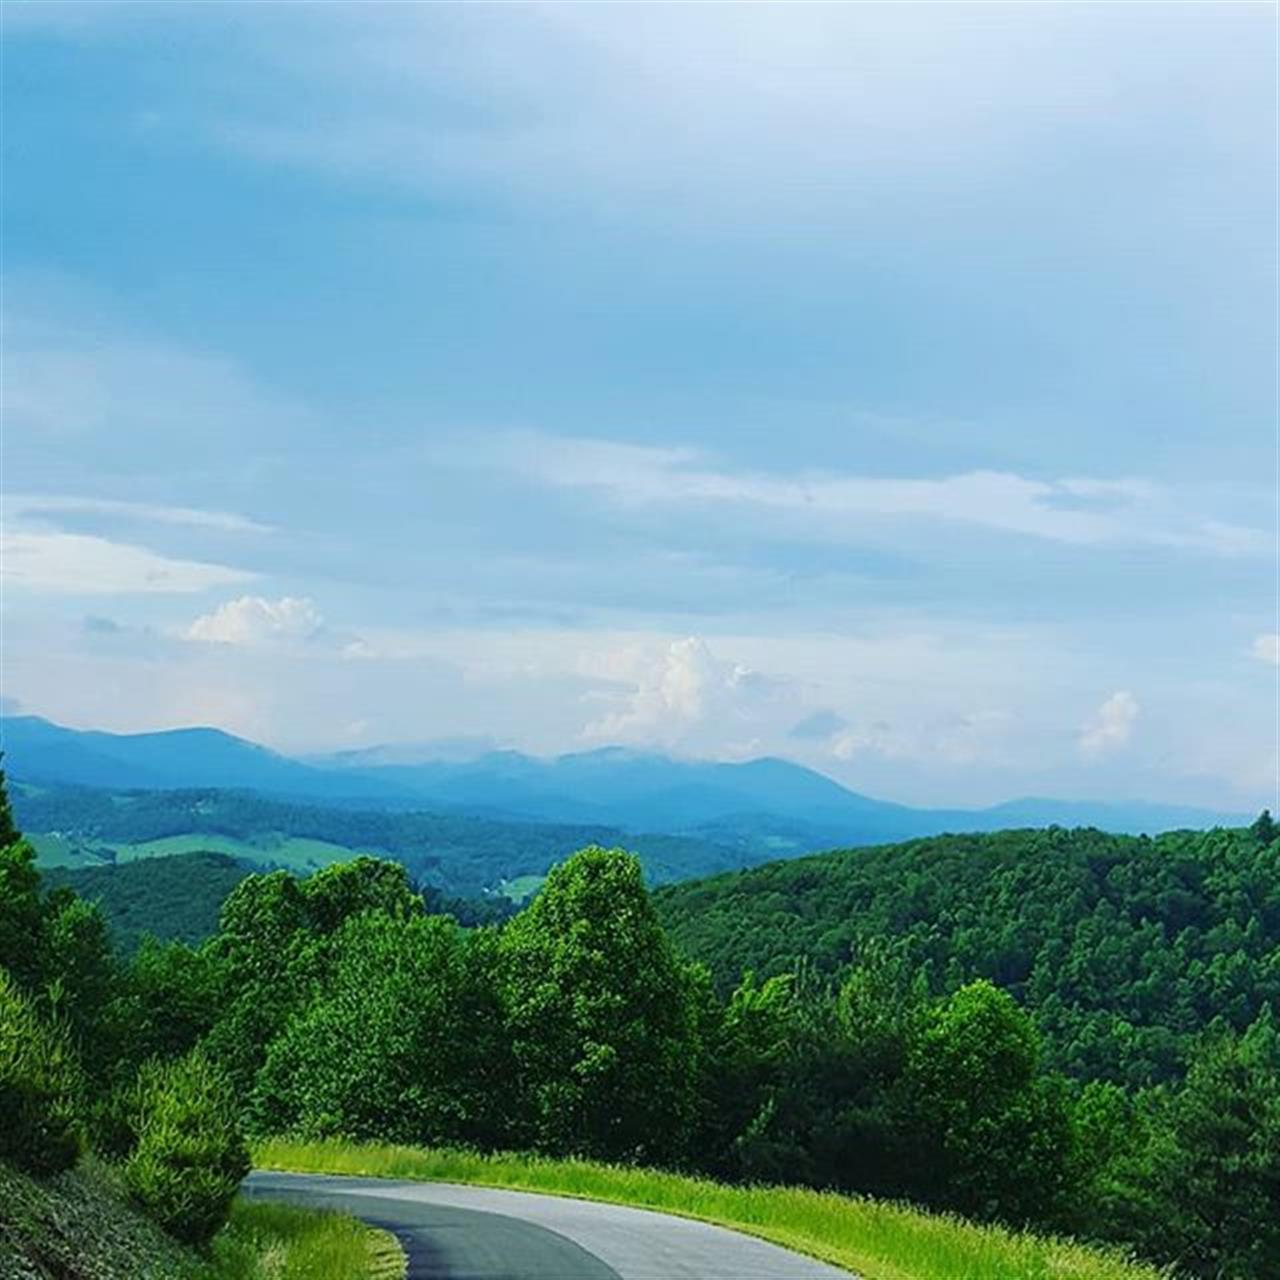 Beautiful views the other day from This development in the Goshen Valley. This subdivision only has 1-2 homes so far, why I wonder? It's in a great location and the prices are reasonable. Just another real estate mystery! . . . #CarlsonRealtors #LeadingRELocal #BlowingRock #Boone #HighCountryHomeSpecialists #RealEstate #NCHighCountry #NCMountains #Realtorlife #LongRangeViews #Appalachians #foreverviews